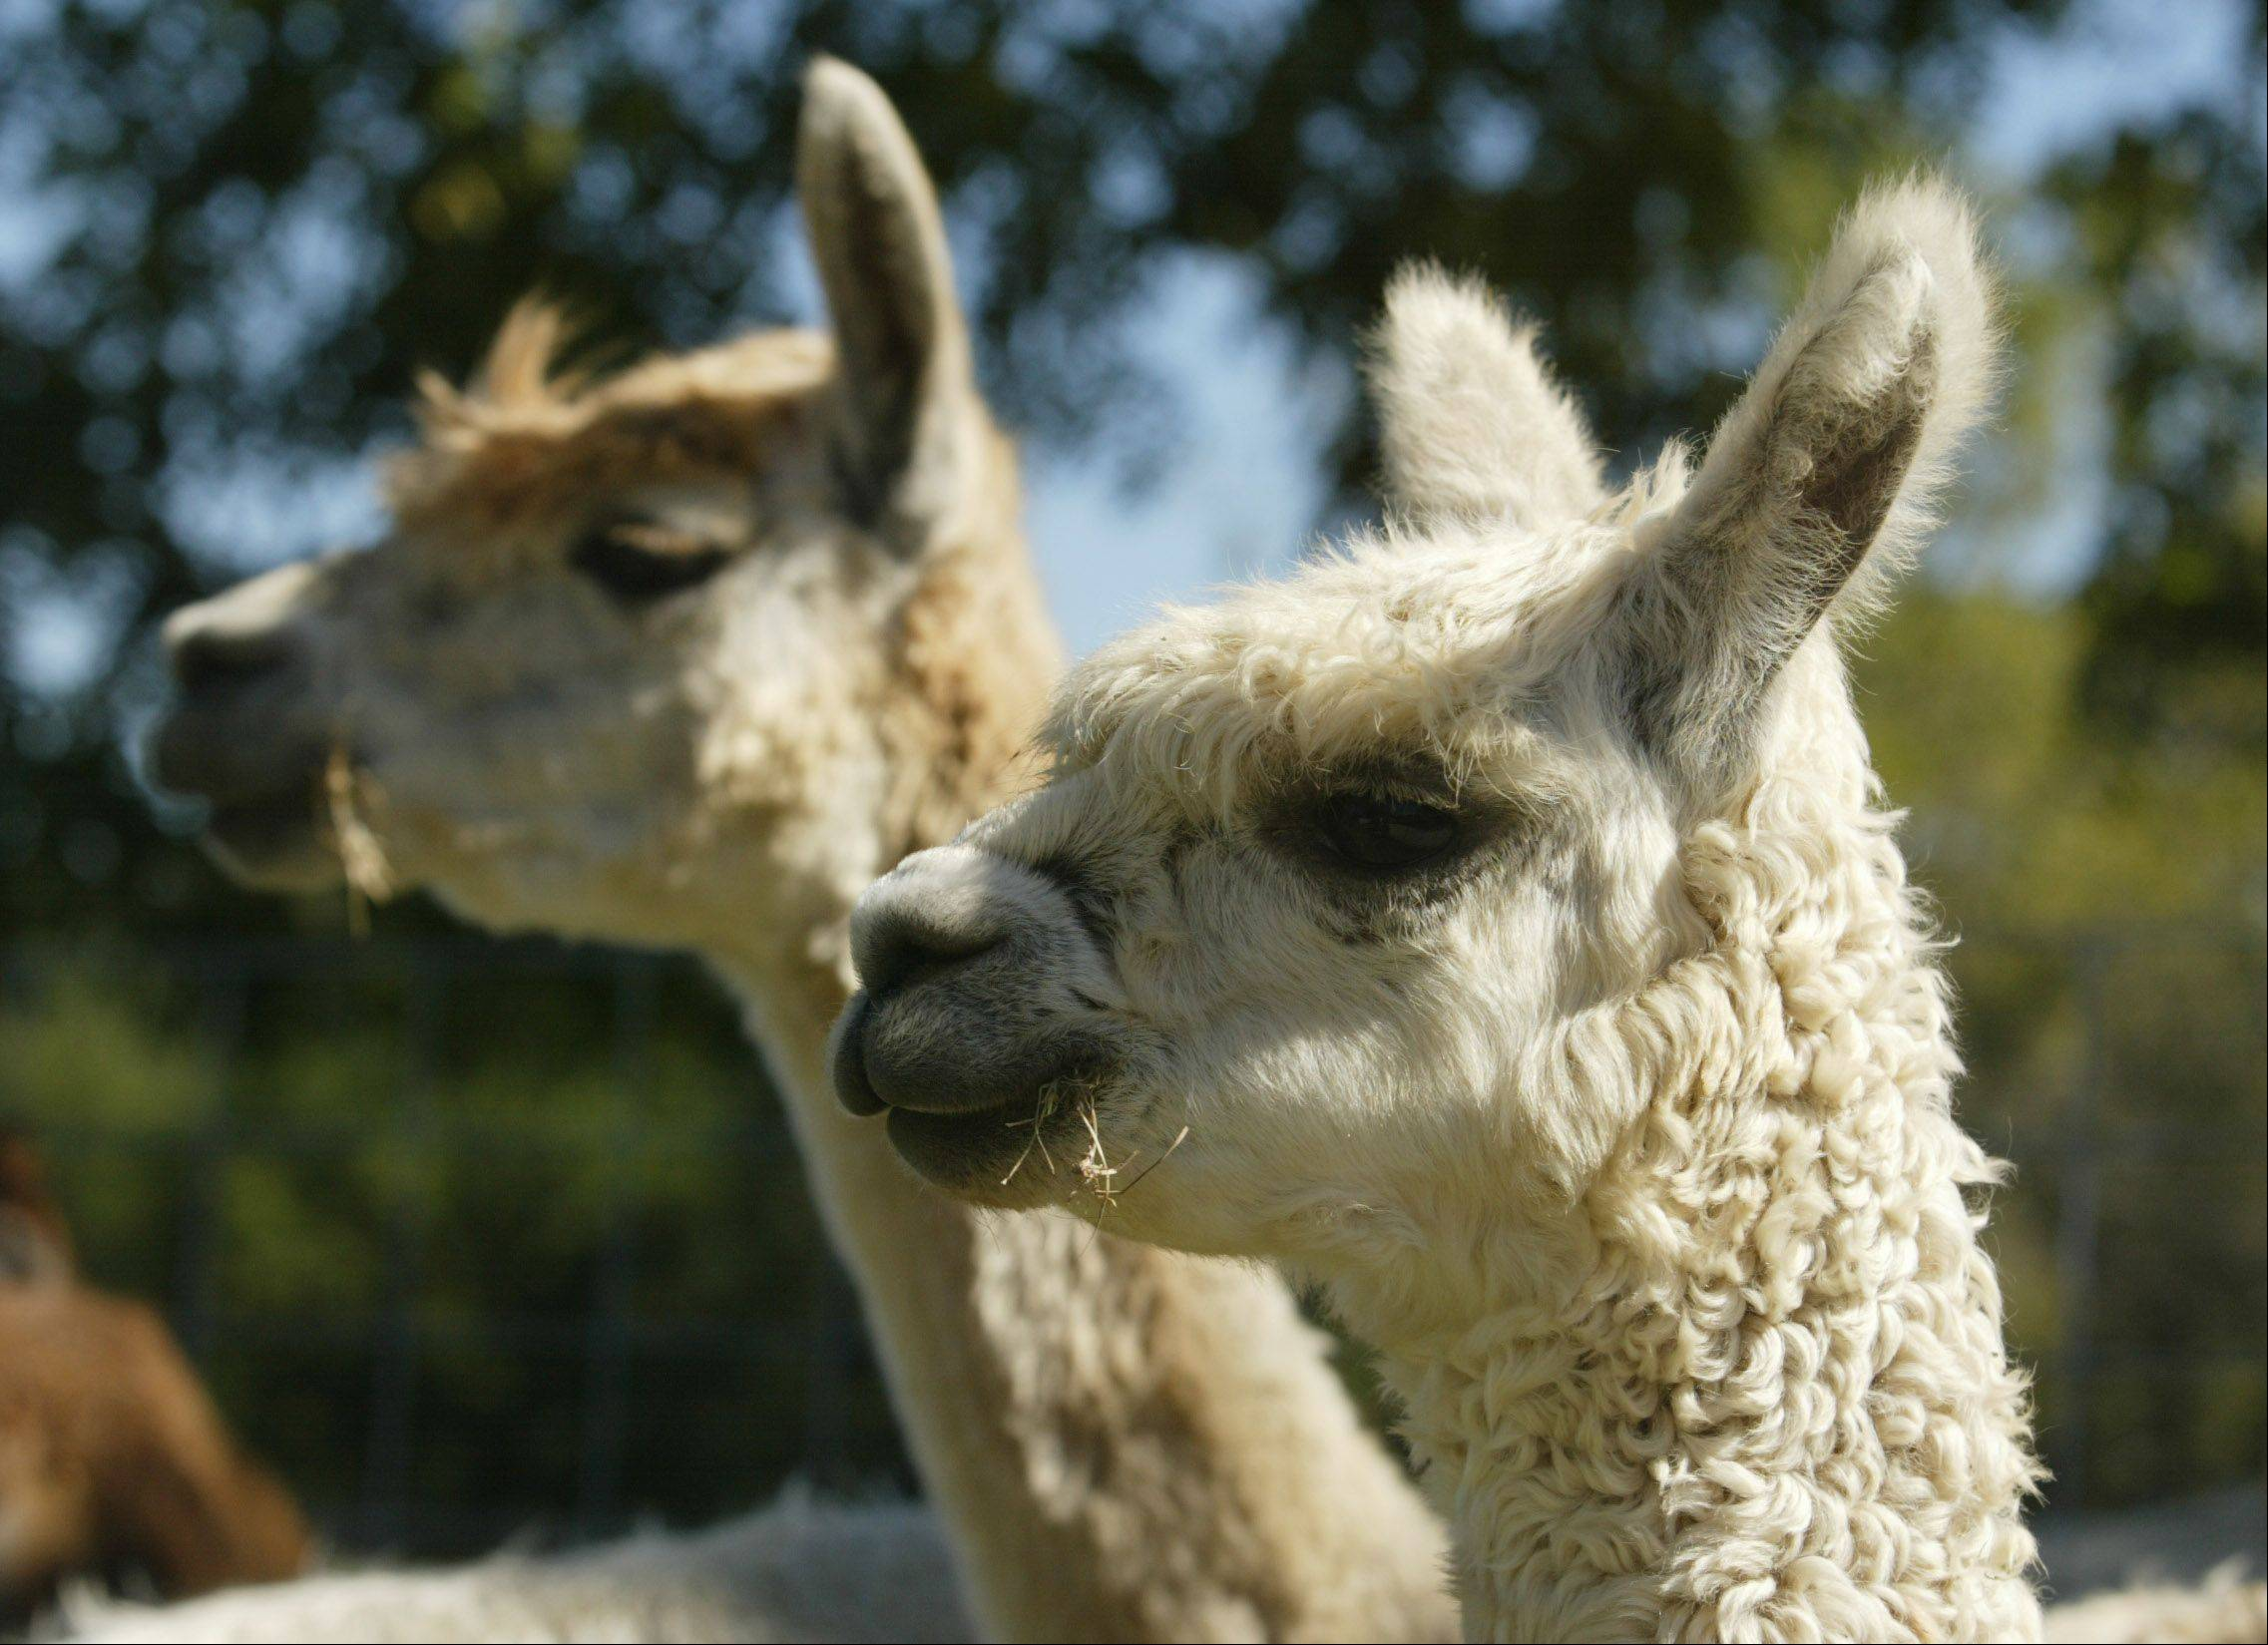 Waldron Grove Alpacas invite you to learn about alpacas at the open house this weekend.